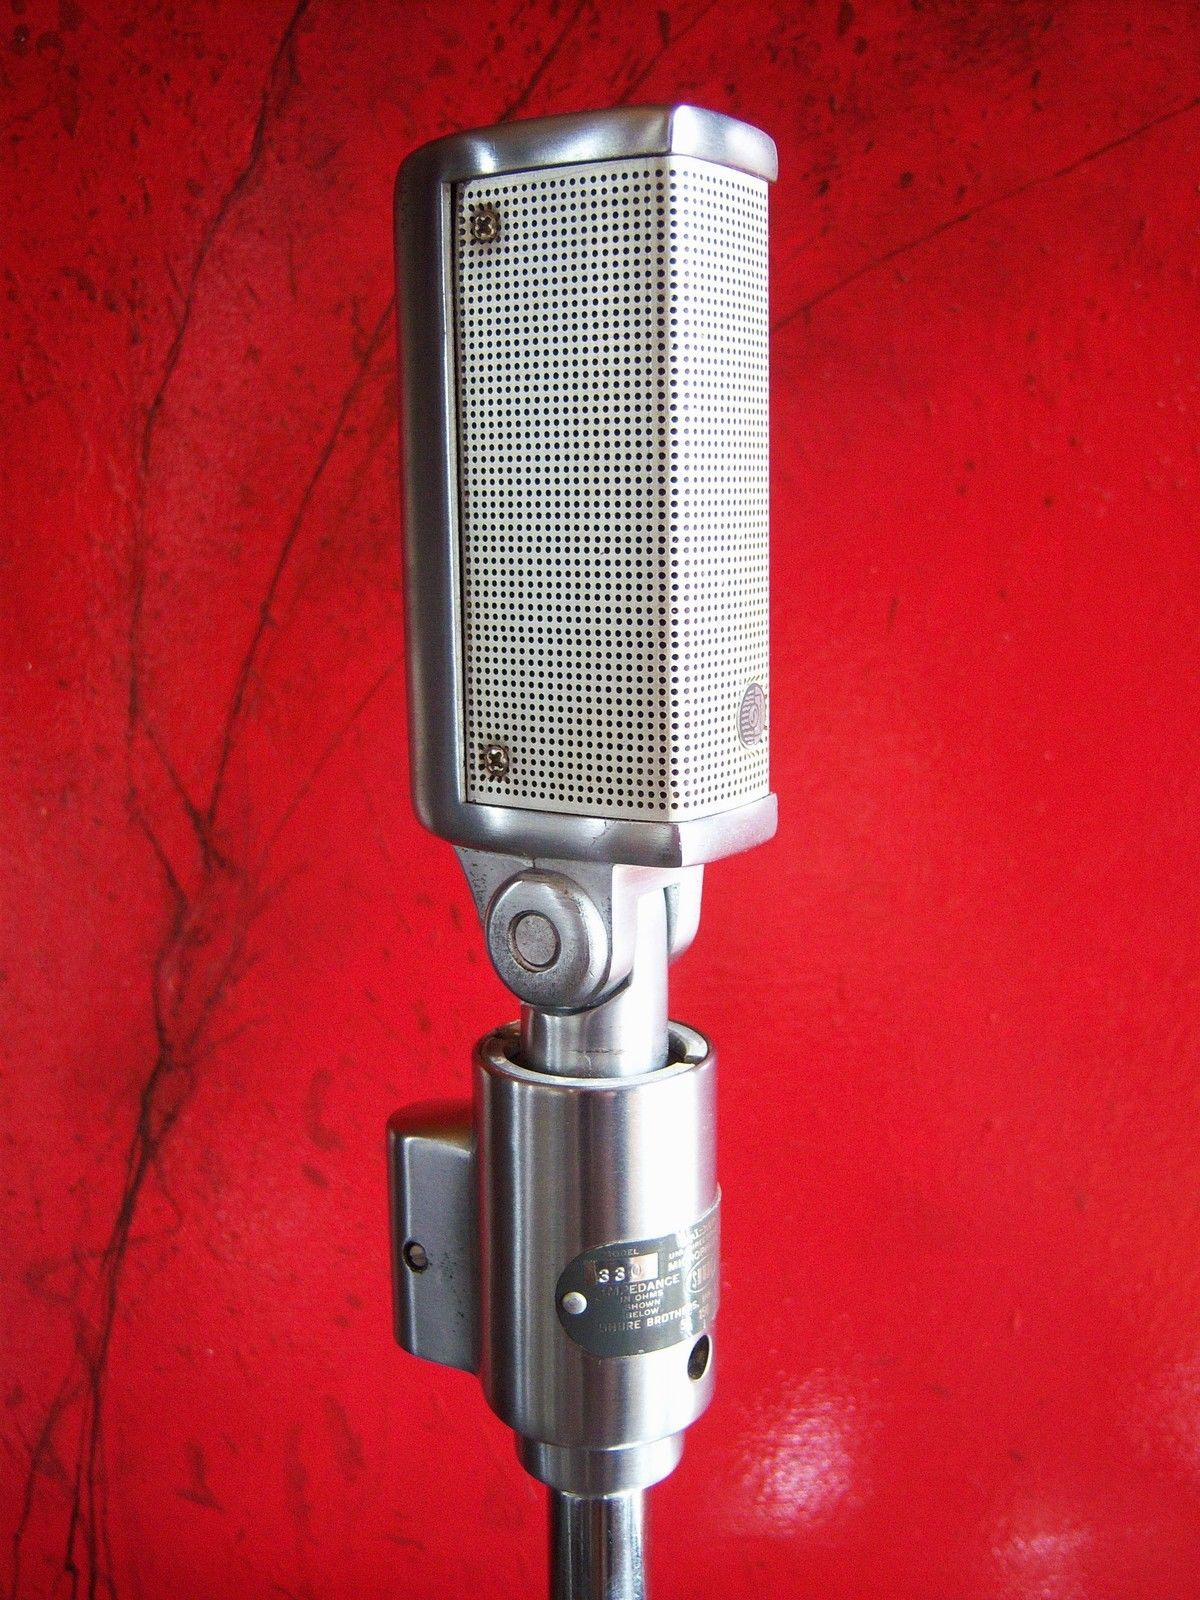 shure brothers microphones